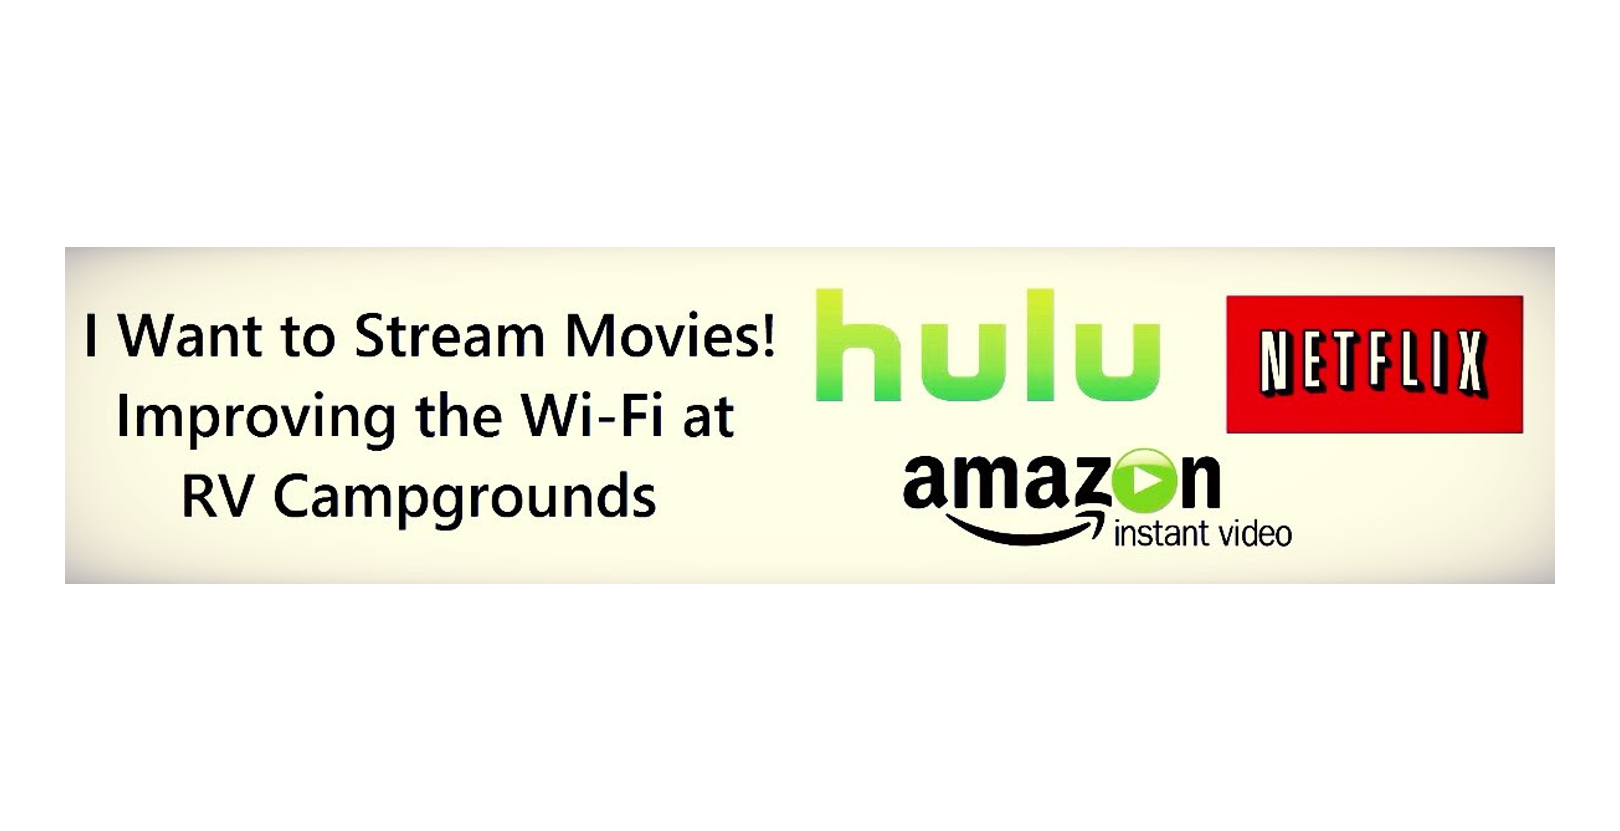 I Want to Stream Movies!  Improving the WiFi at RV Campgrounds